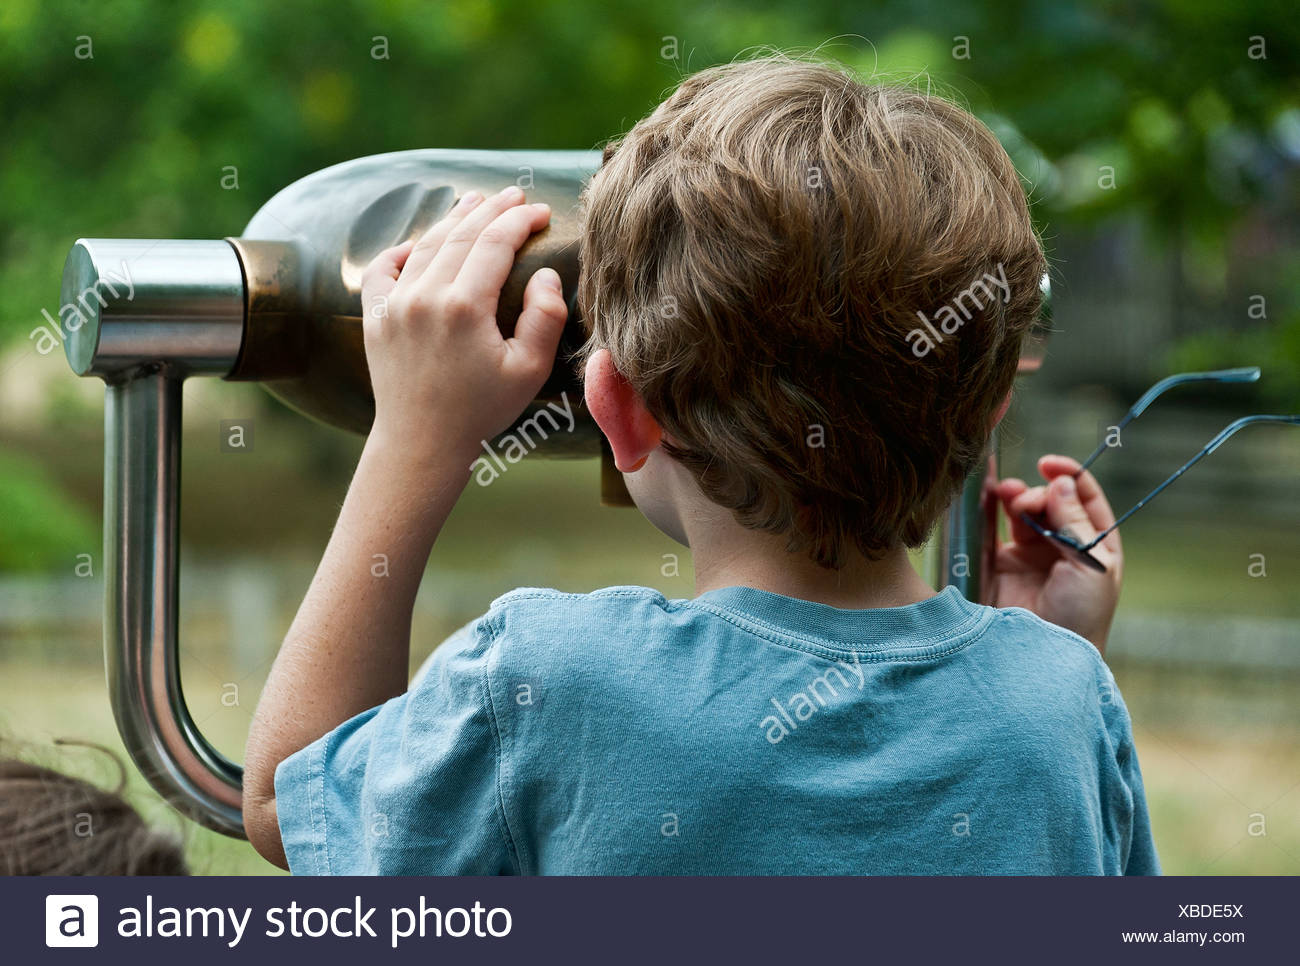 Boy looking through a viewing scope. - Stock Image